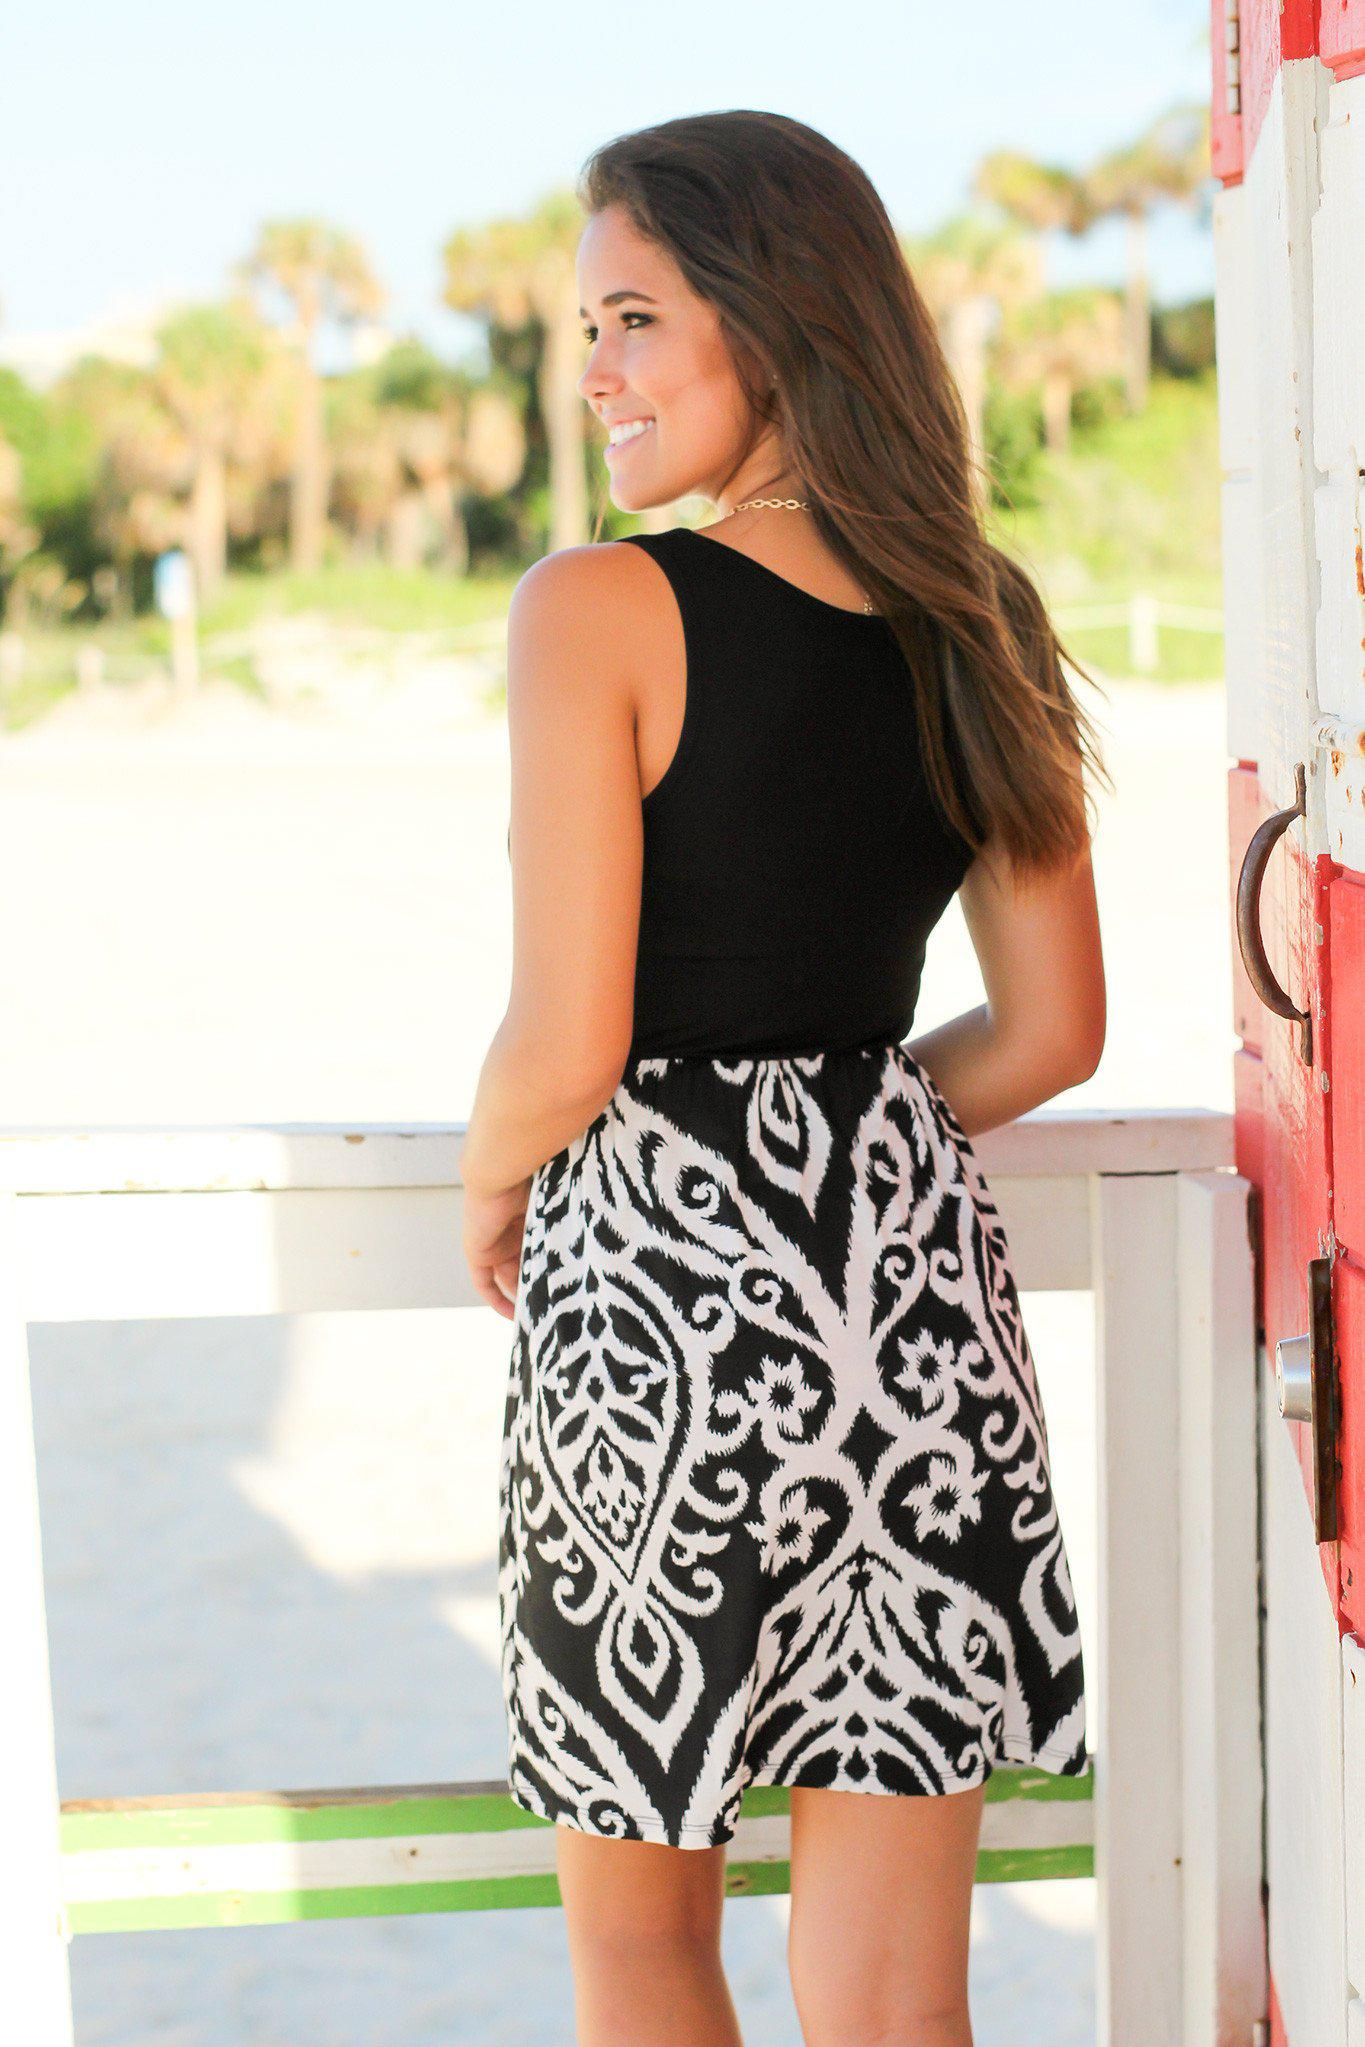 Black and White Printed Short Dress